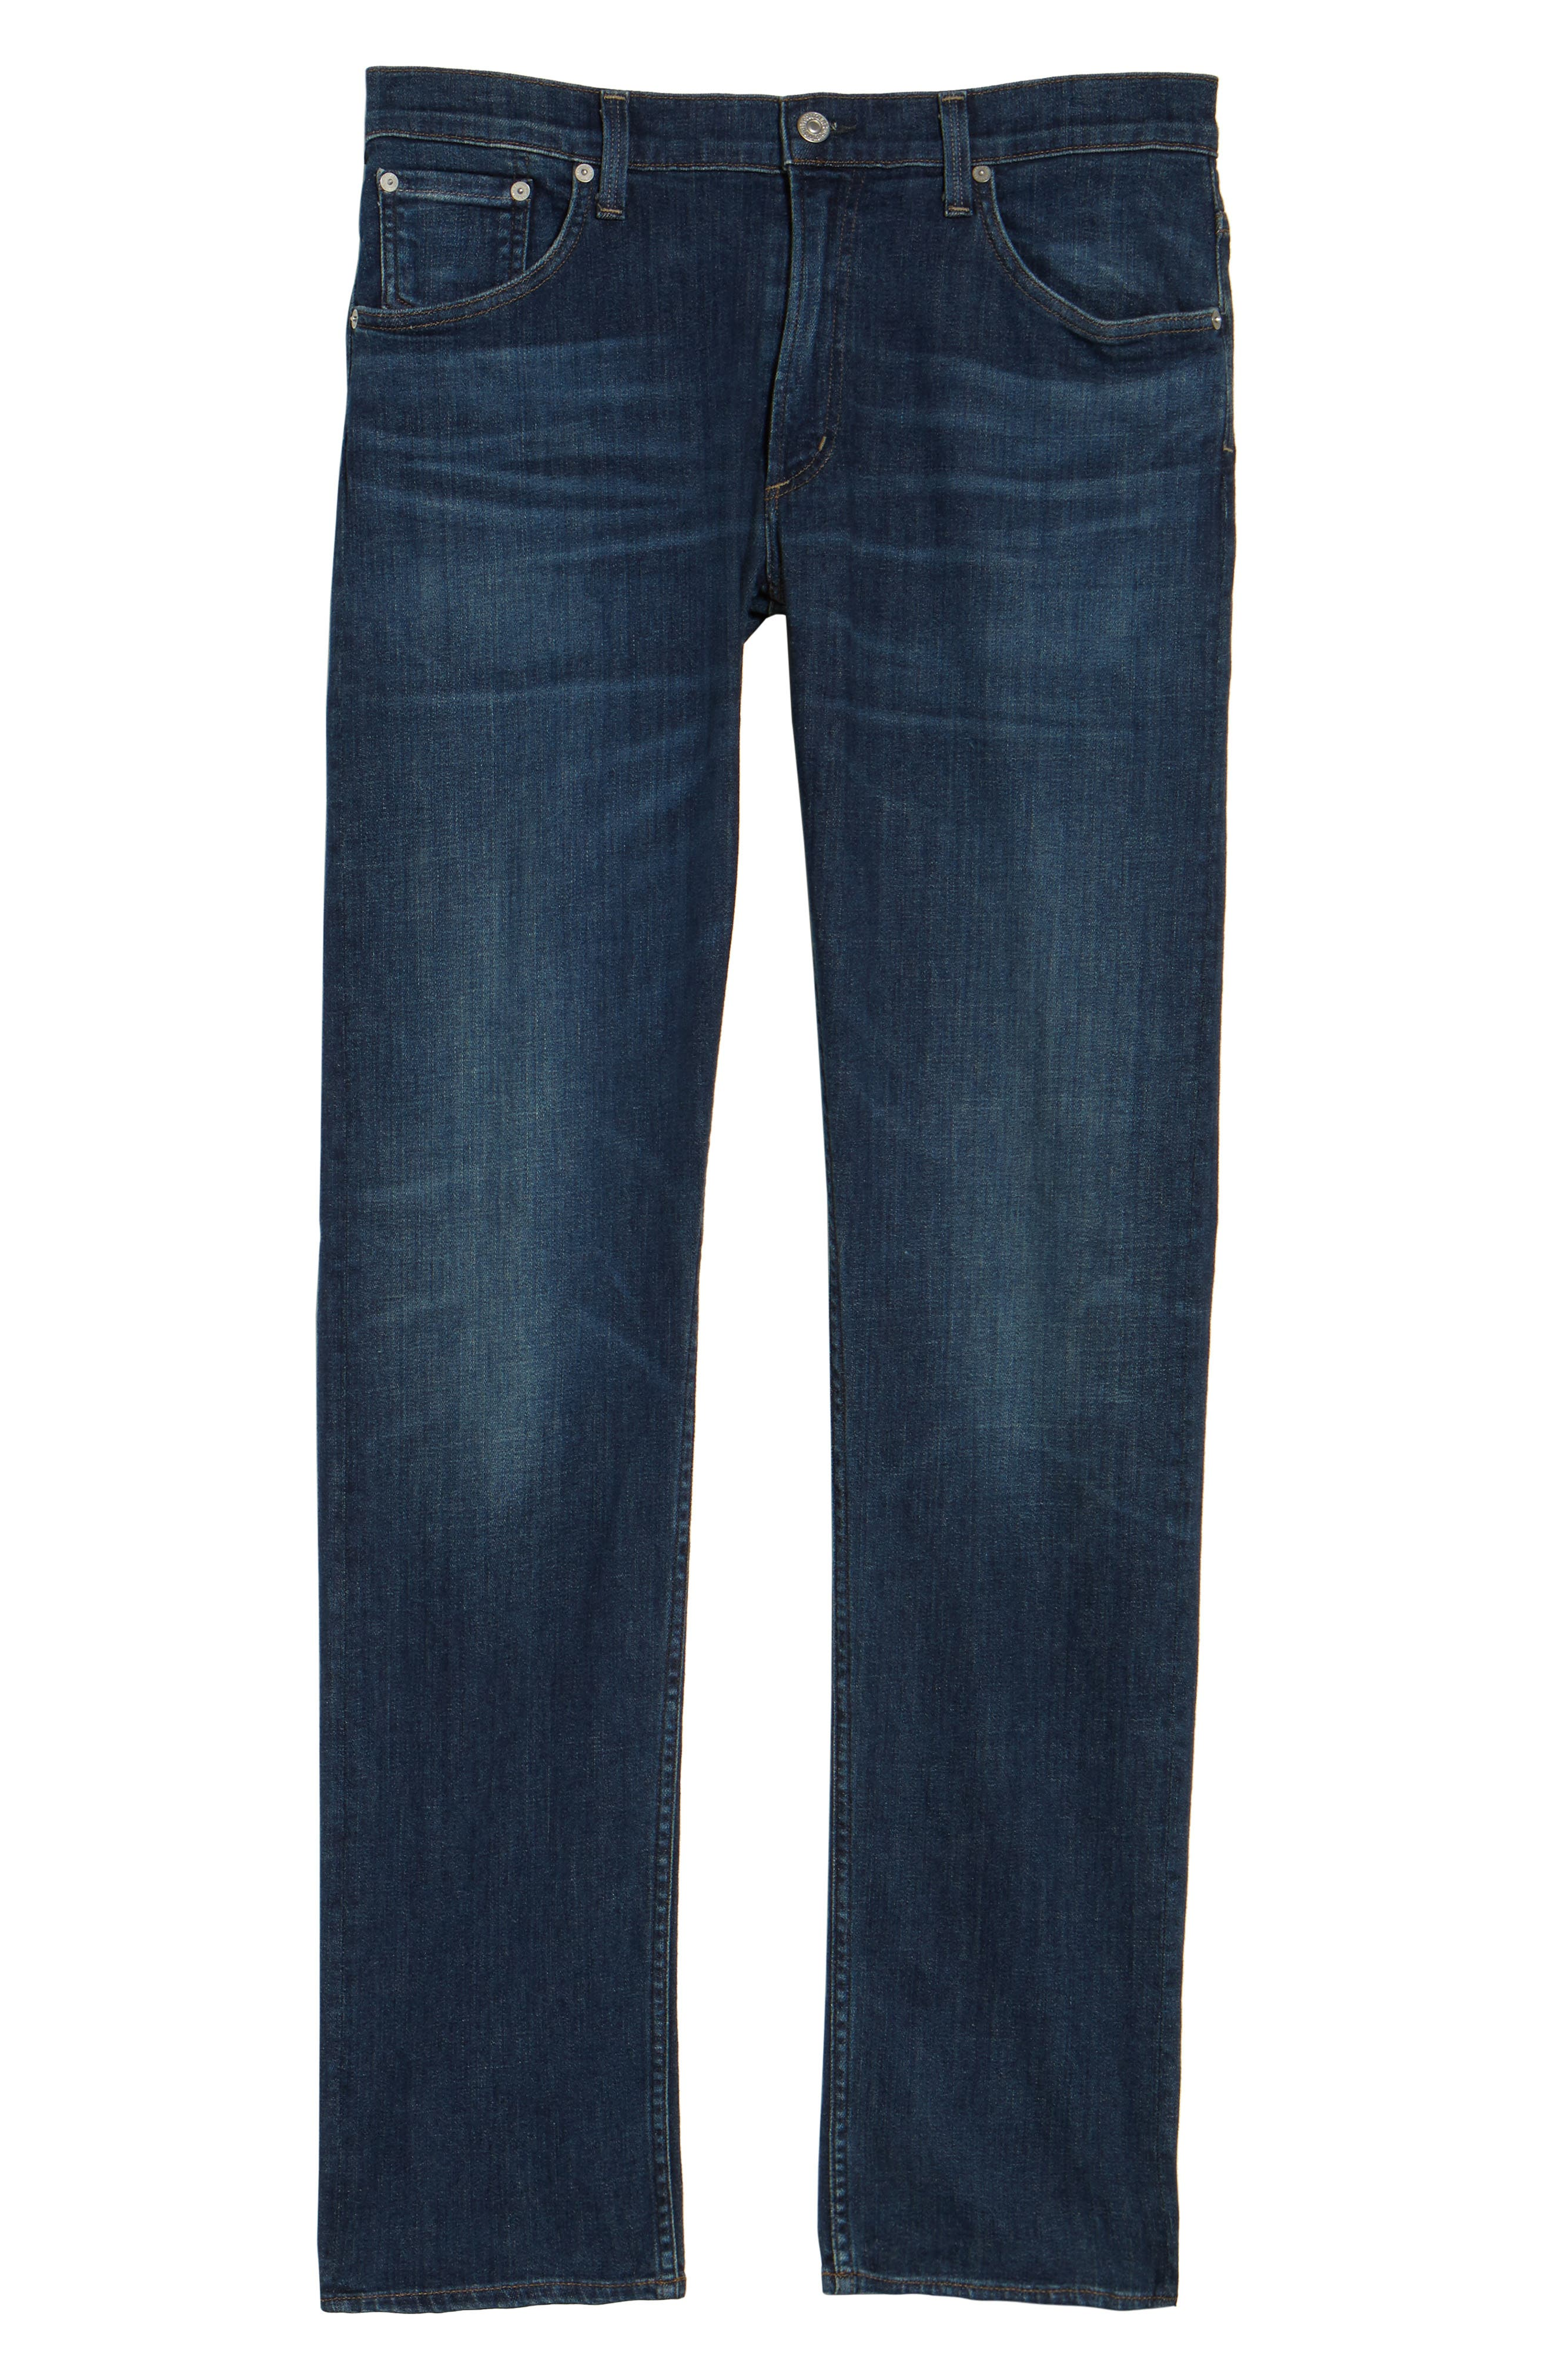 Bowery Slim Fit Jeans,                             Alternate thumbnail 6, color,                             401